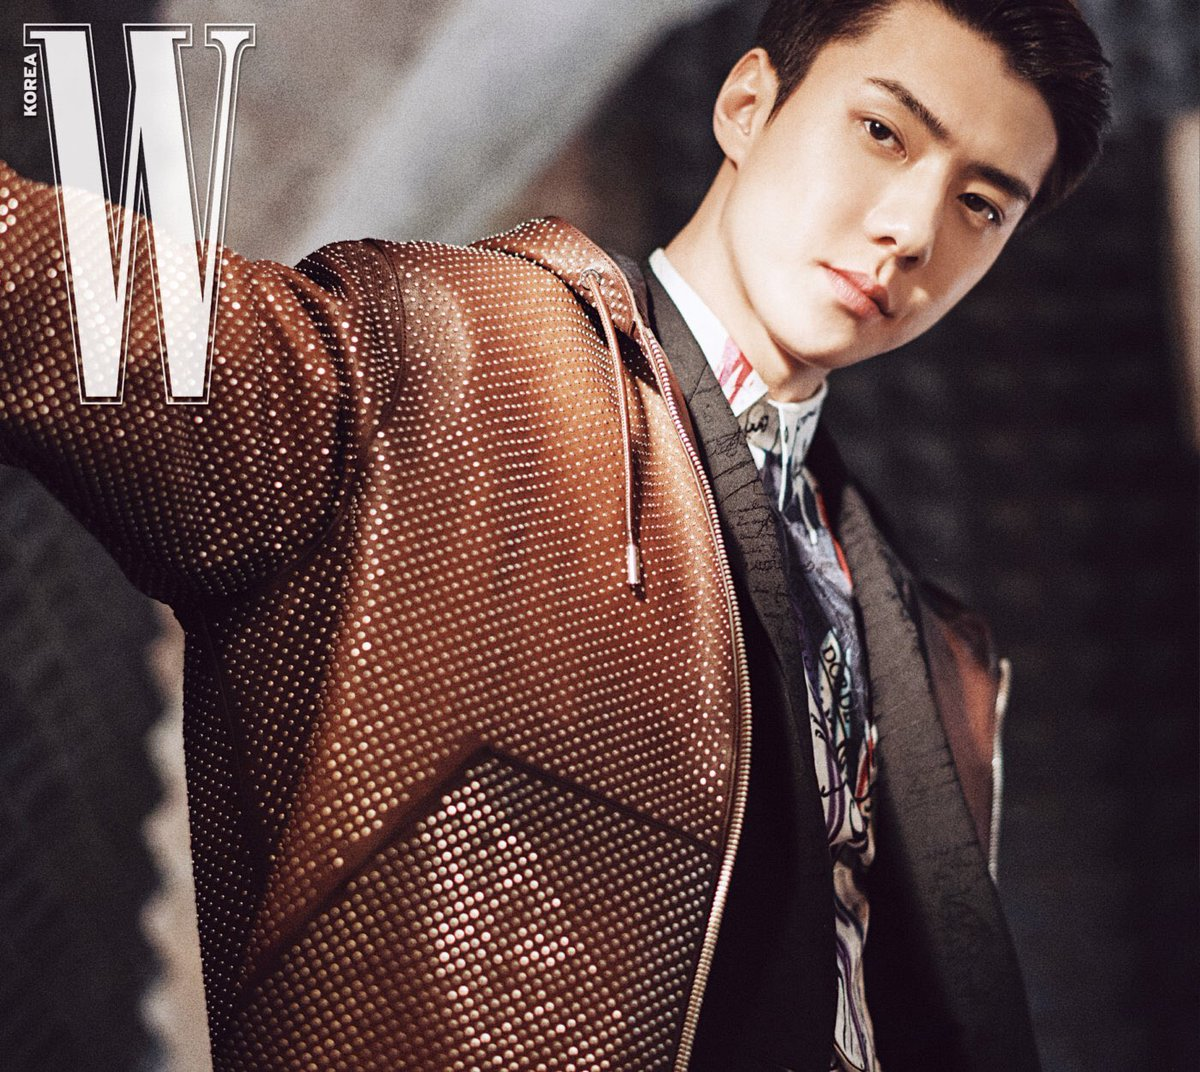 He's indeed The Epitome of Beauty Lord Oh Sehun  #EXO #SEHUN #SEHUNXBERLUTI #OBSESSION<br>http://pic.twitter.com/bSUHlDnDwV